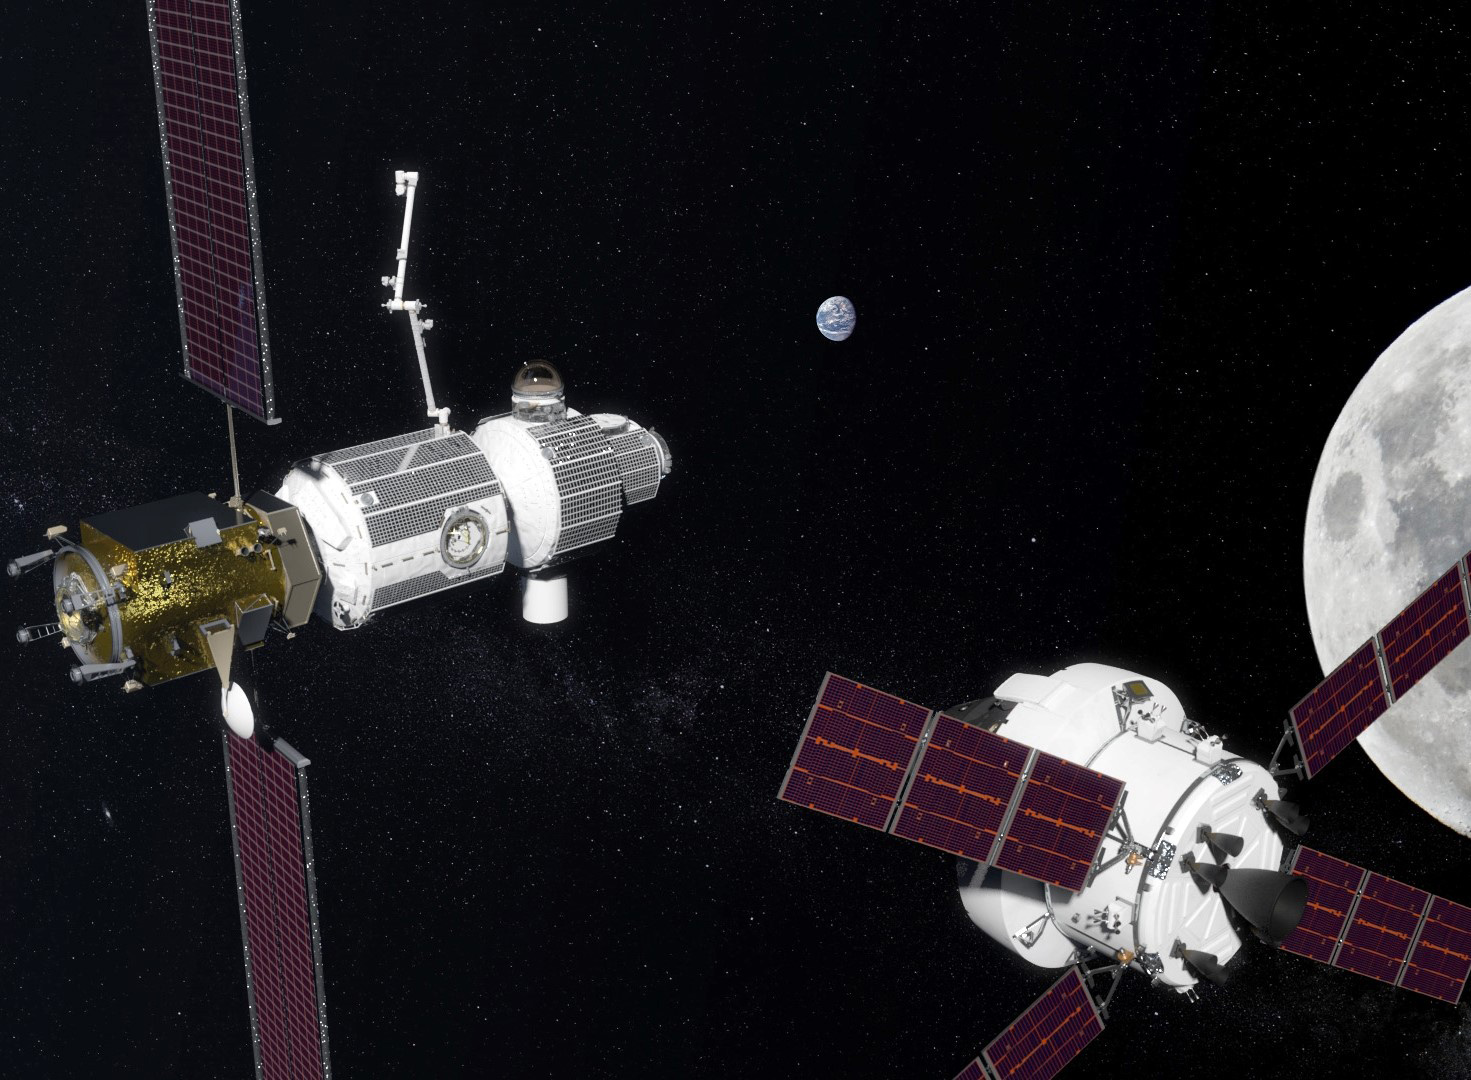 Image: The Deep Space Gateway in an artist's rendering